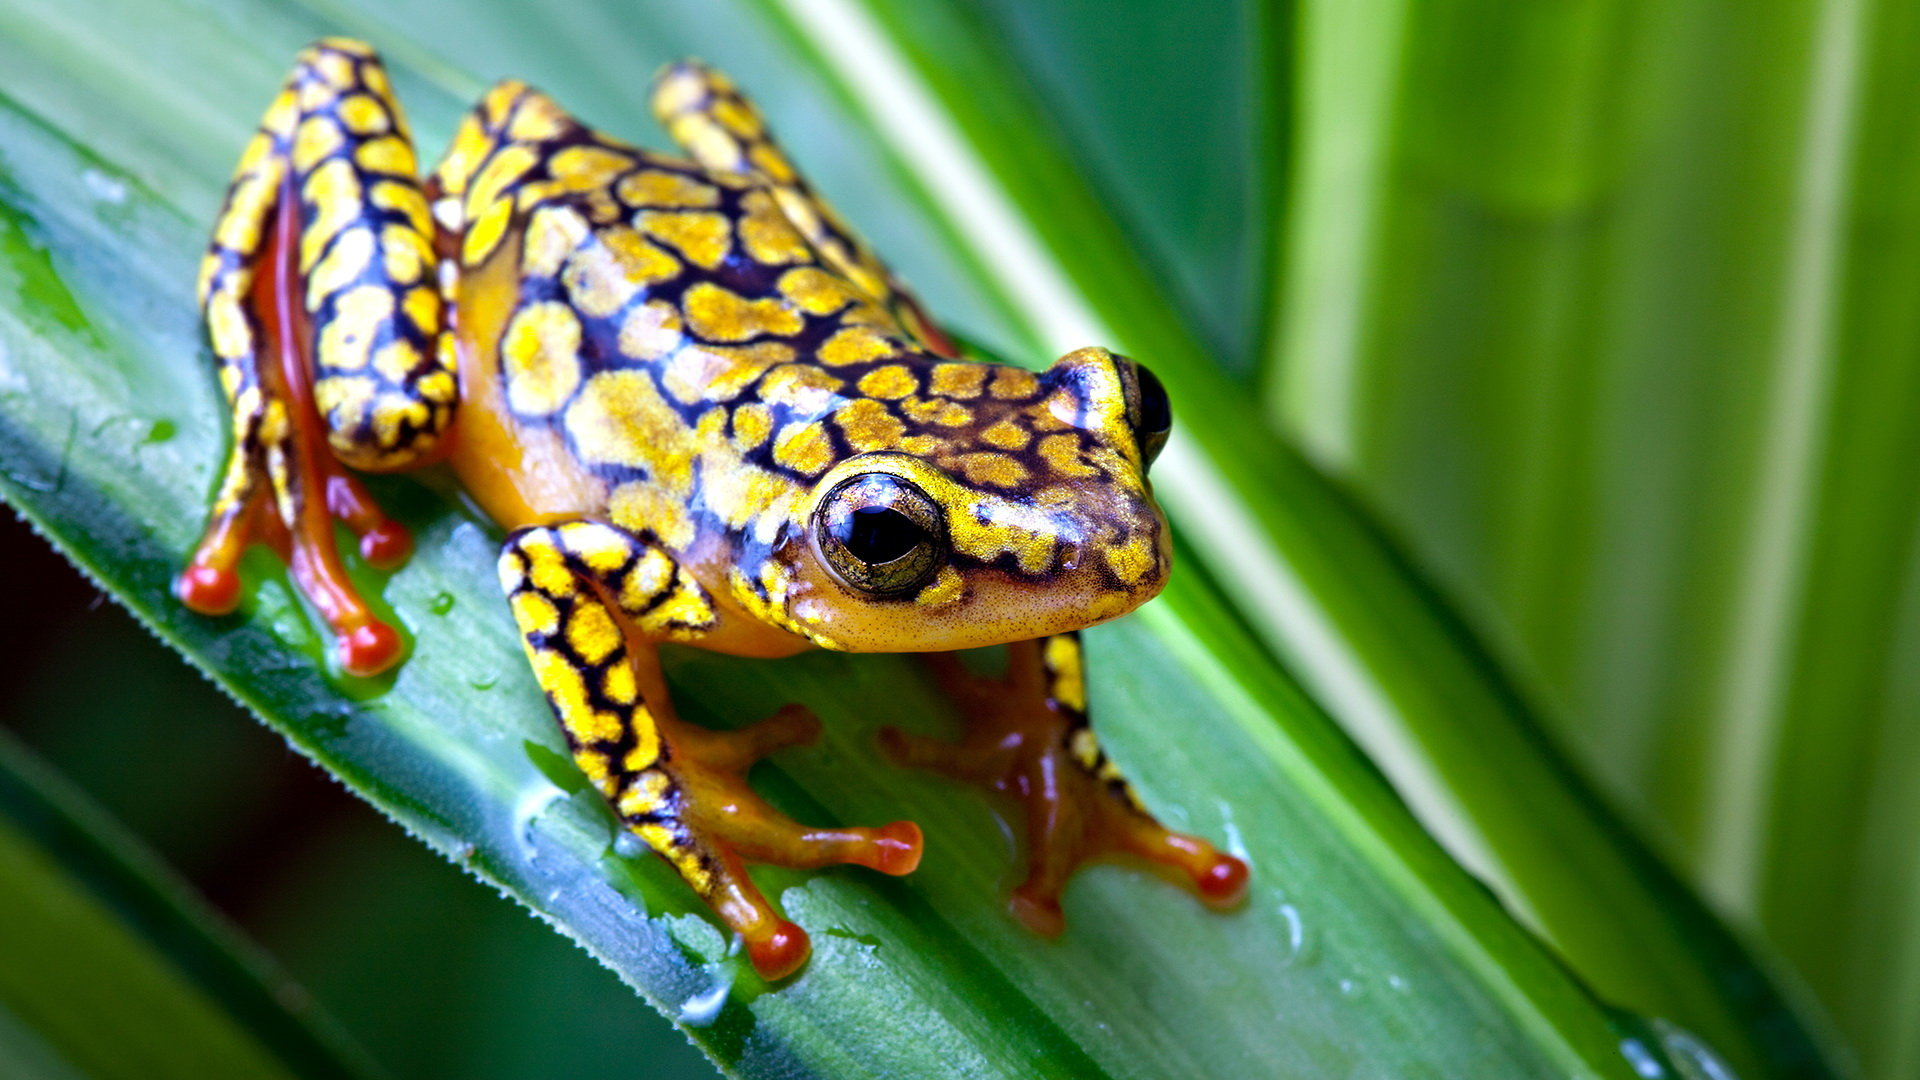 Awesome Poison Dart Frog free wallpaper ID:253492 for hd 1920x1080 desktop